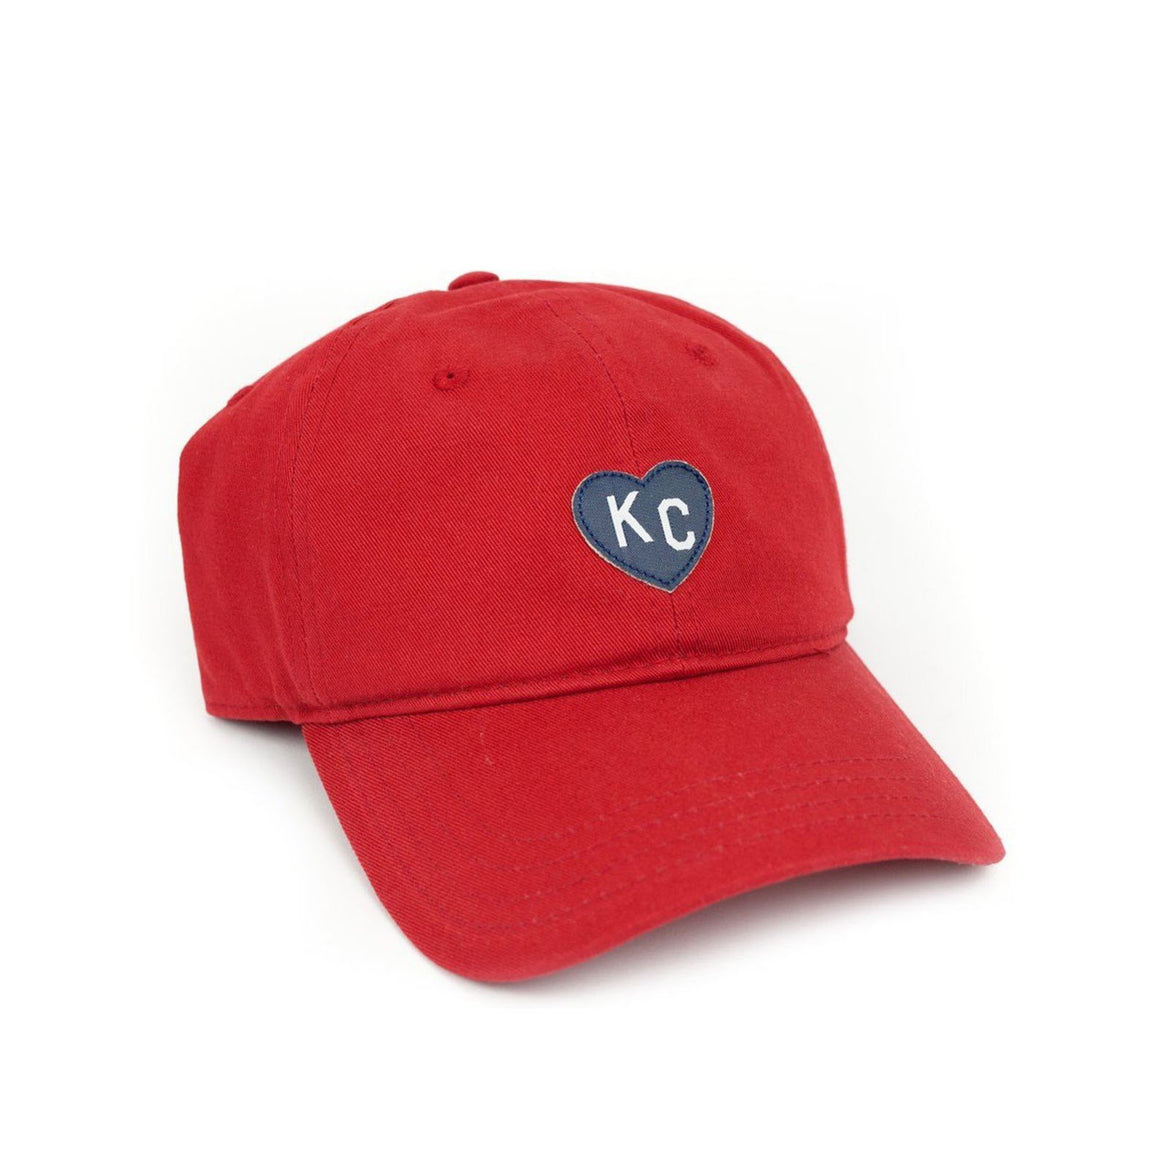 CHARLIE HUSTLE | DAD HAT | RED / NAVY HEART